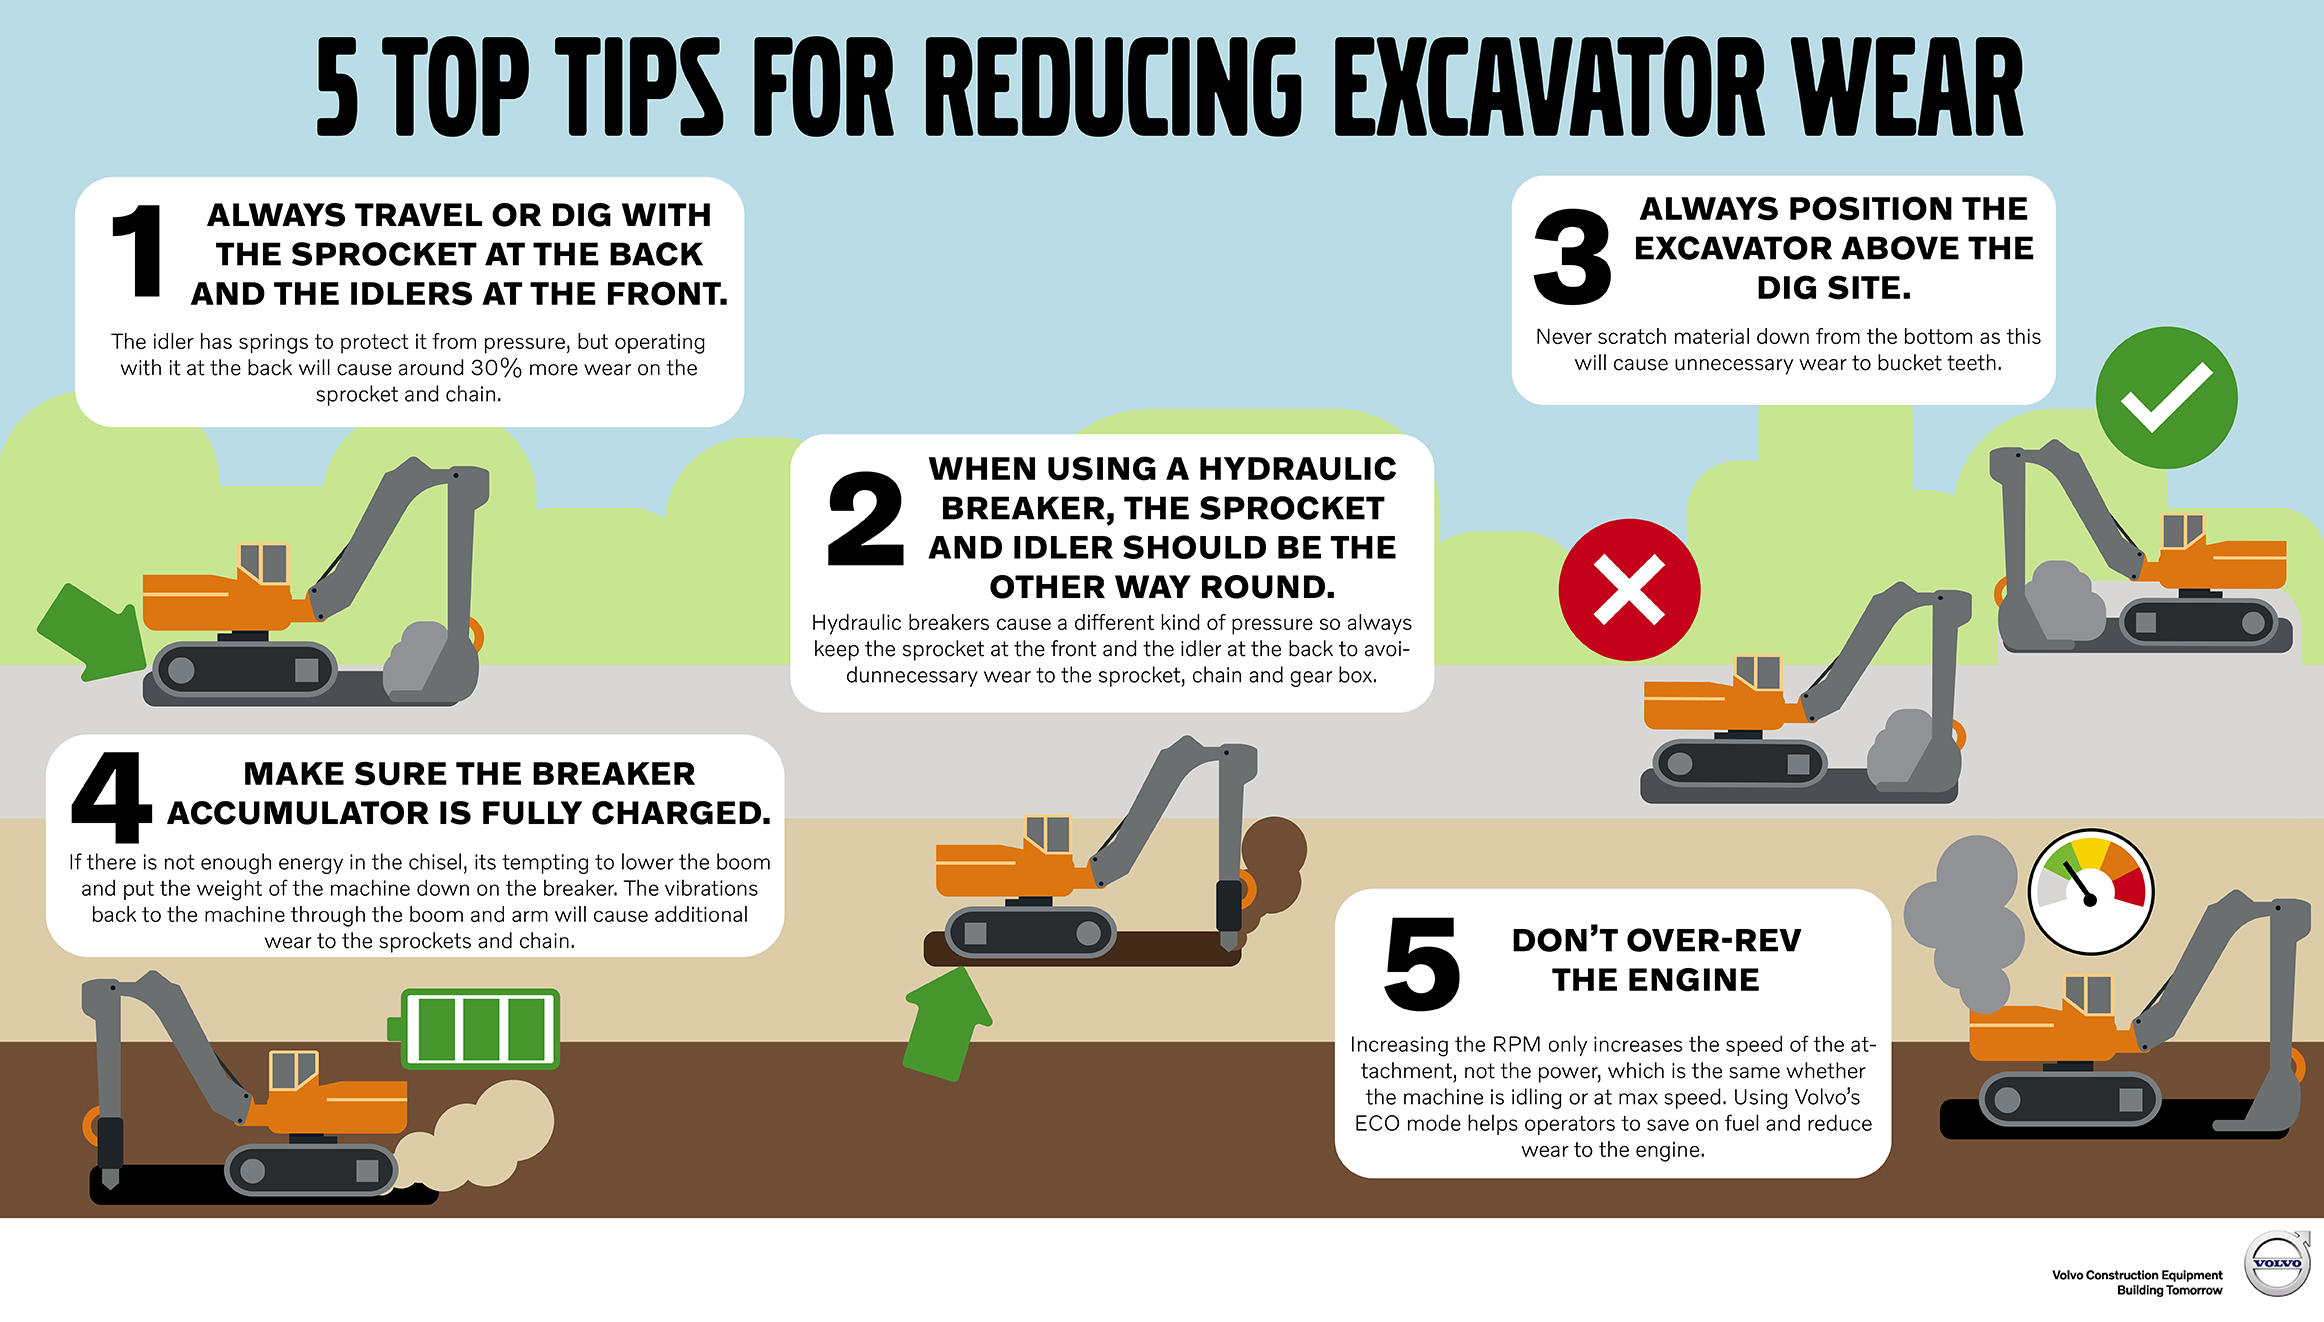 5 tips for reducing excavator wear